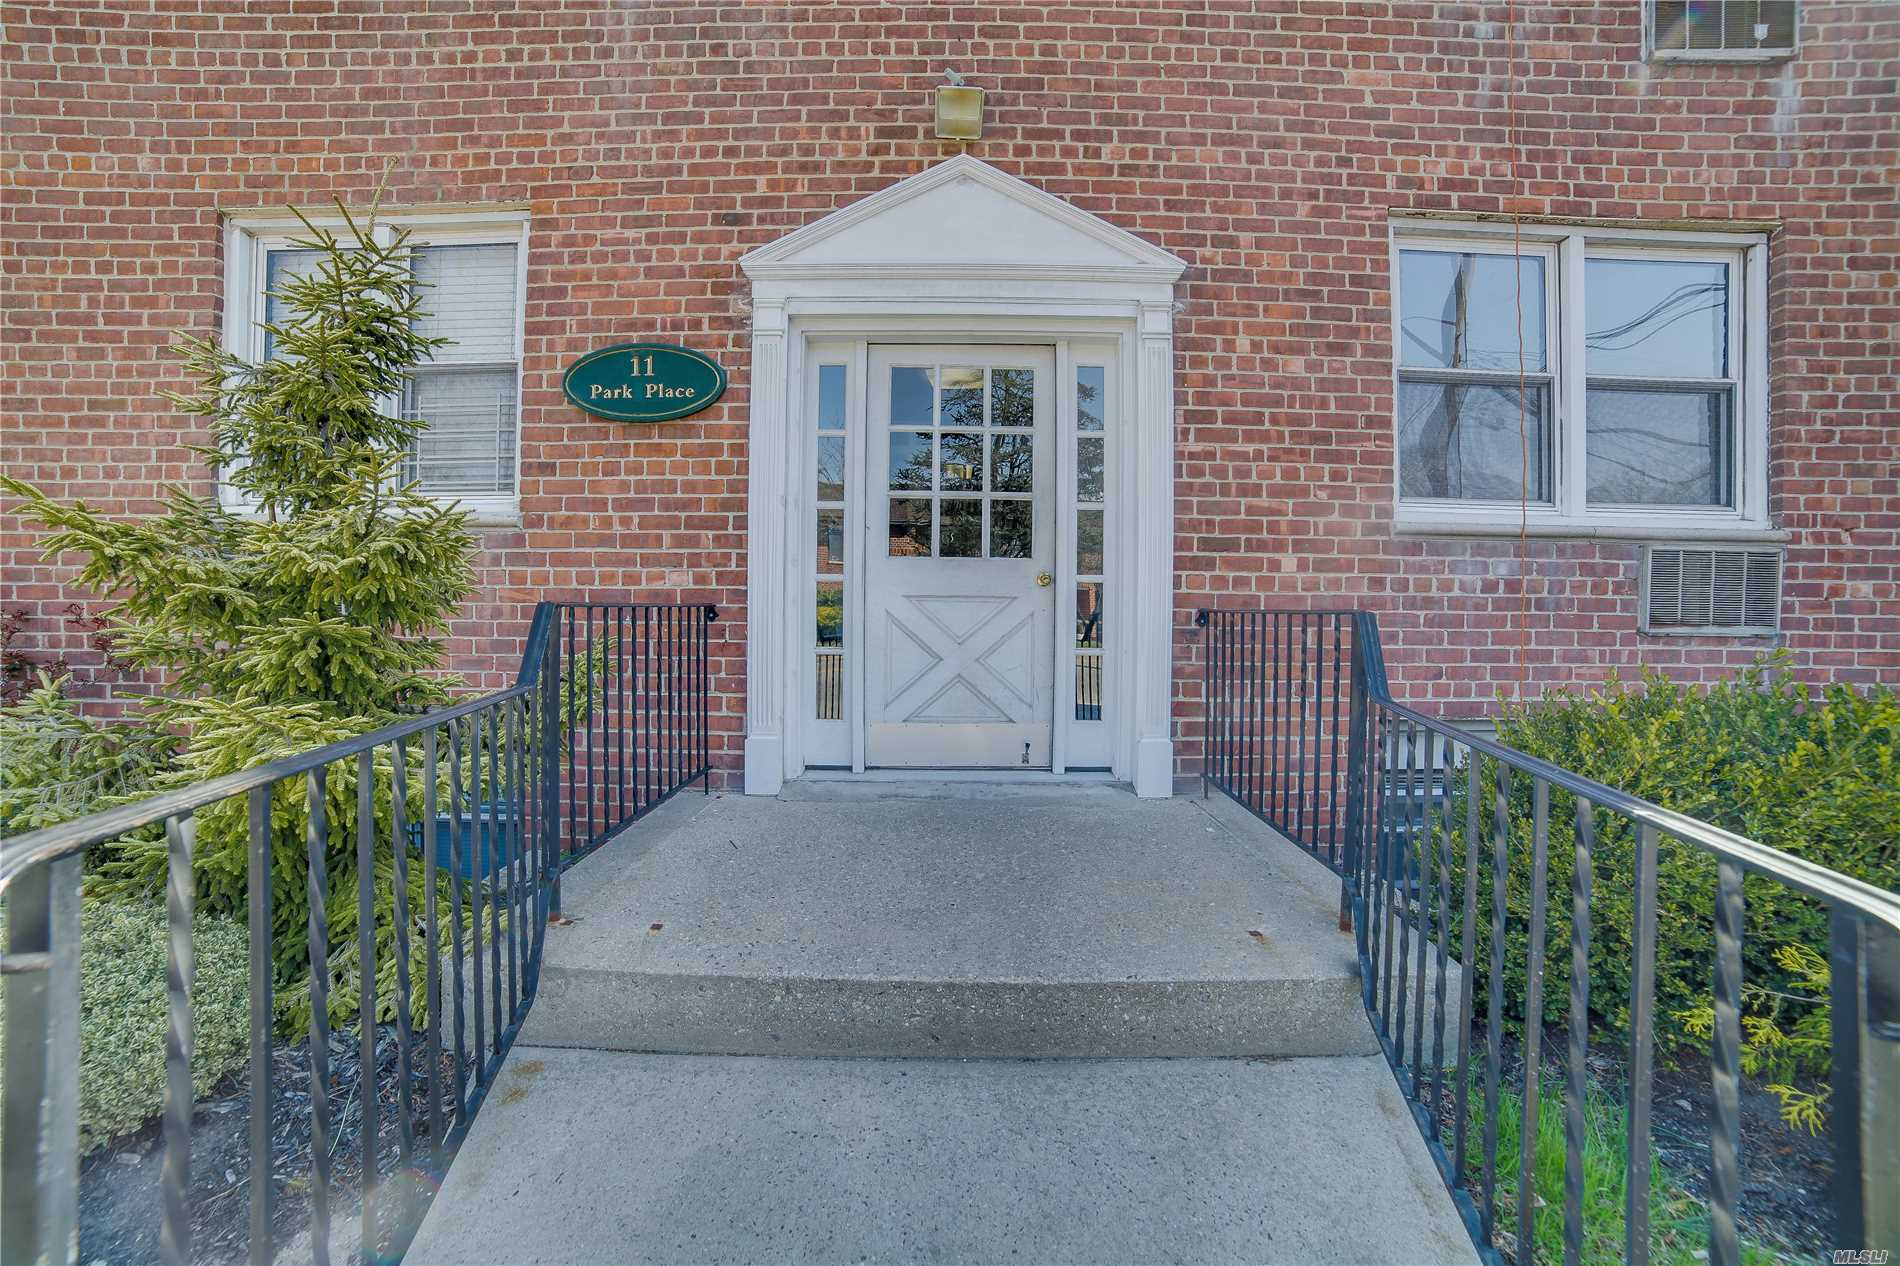 Great Central Rockville Centre Location! Nearby To All Village Restaurants, Shopping And The Lirr Station. Immaculate Apartment With Private Alcove Bedroom Area. Currently No Wait-List For A Parking Spot ($40 Per Month). First Floor Unit. Laundry Room In Building.